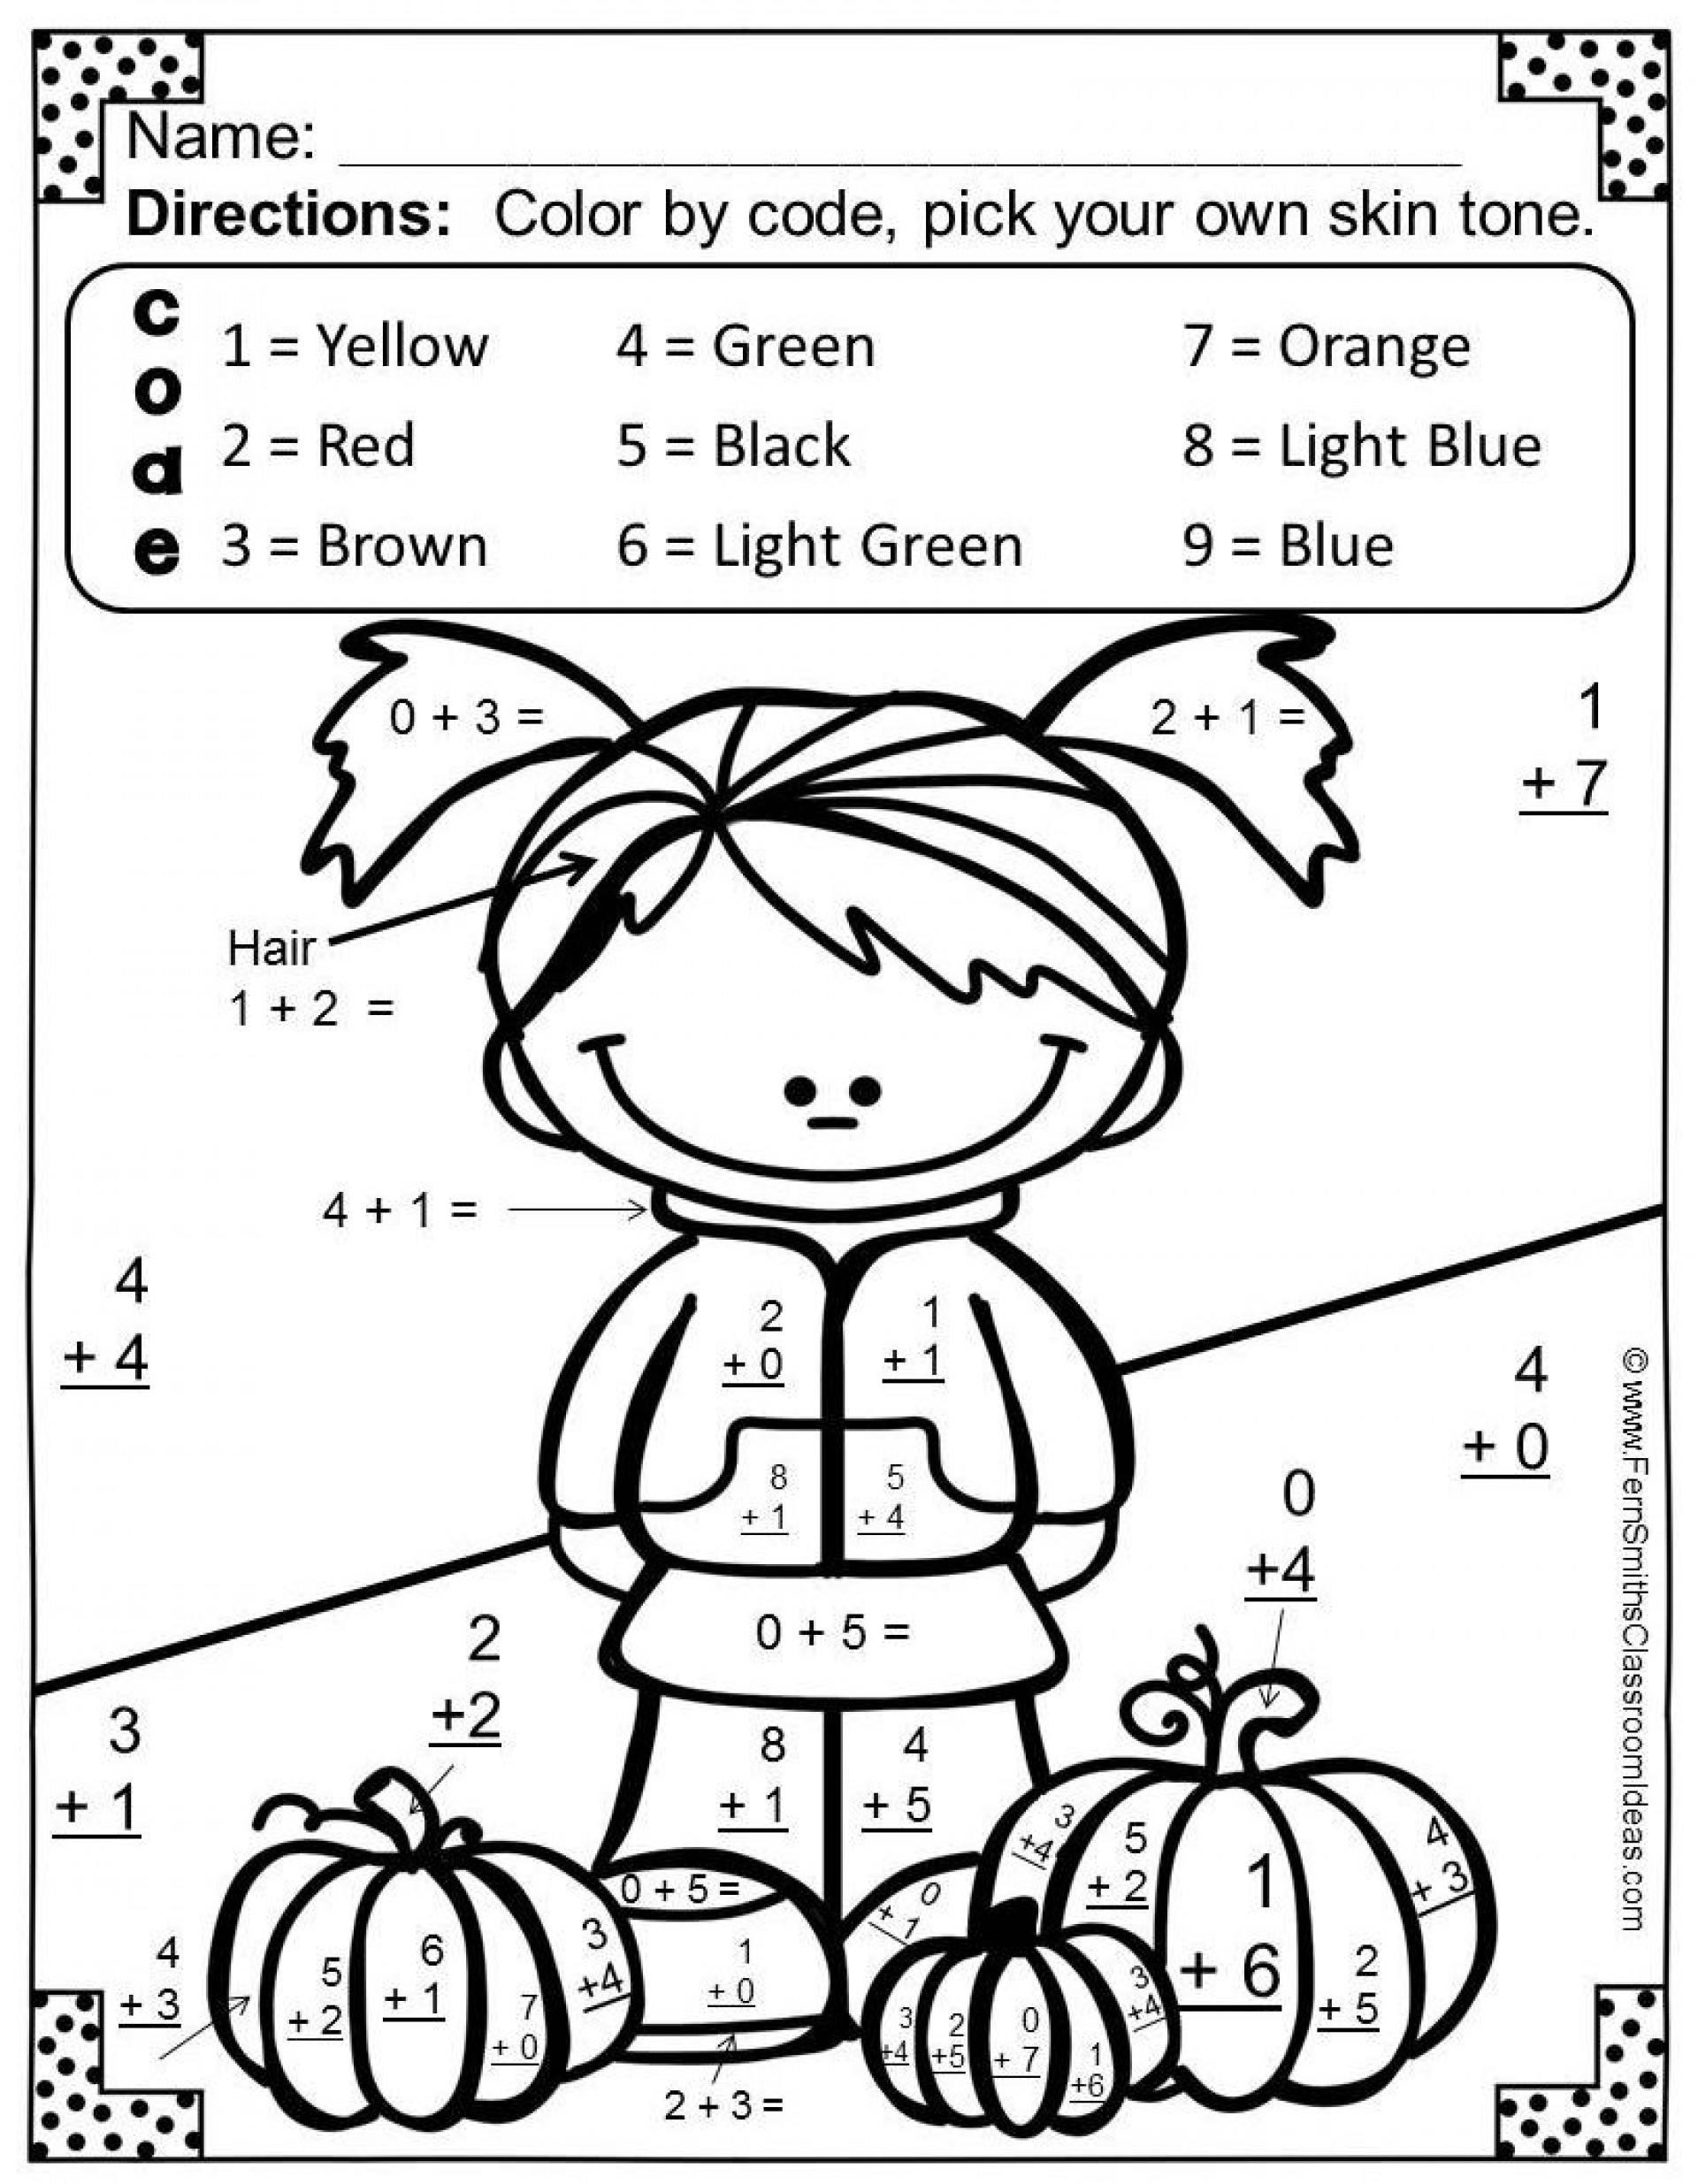 coloring math for 1st graders addition color by number with images 2nd grade math coloring graders math 1st for